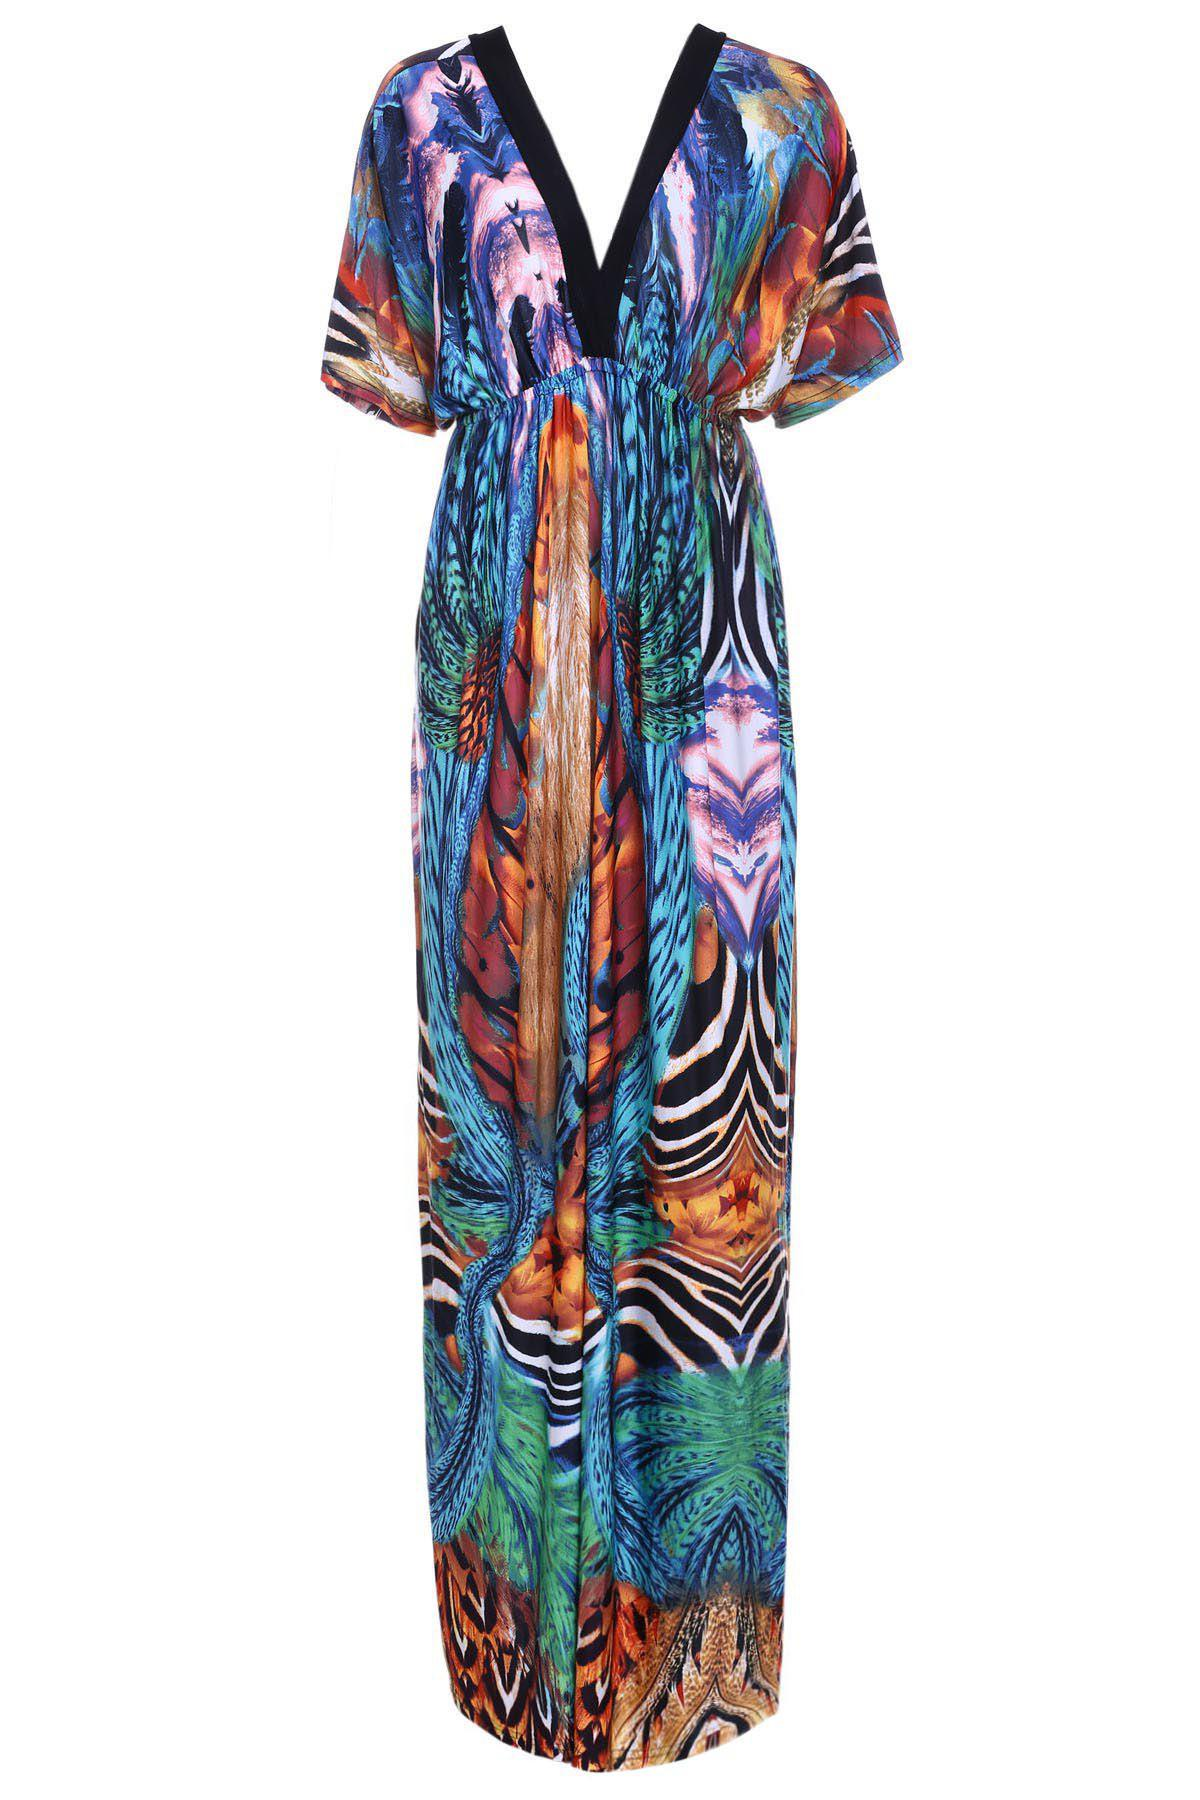 Bohemian Printed V-Neck Short Sleeve Dress For Women - COLORMIX 2XL